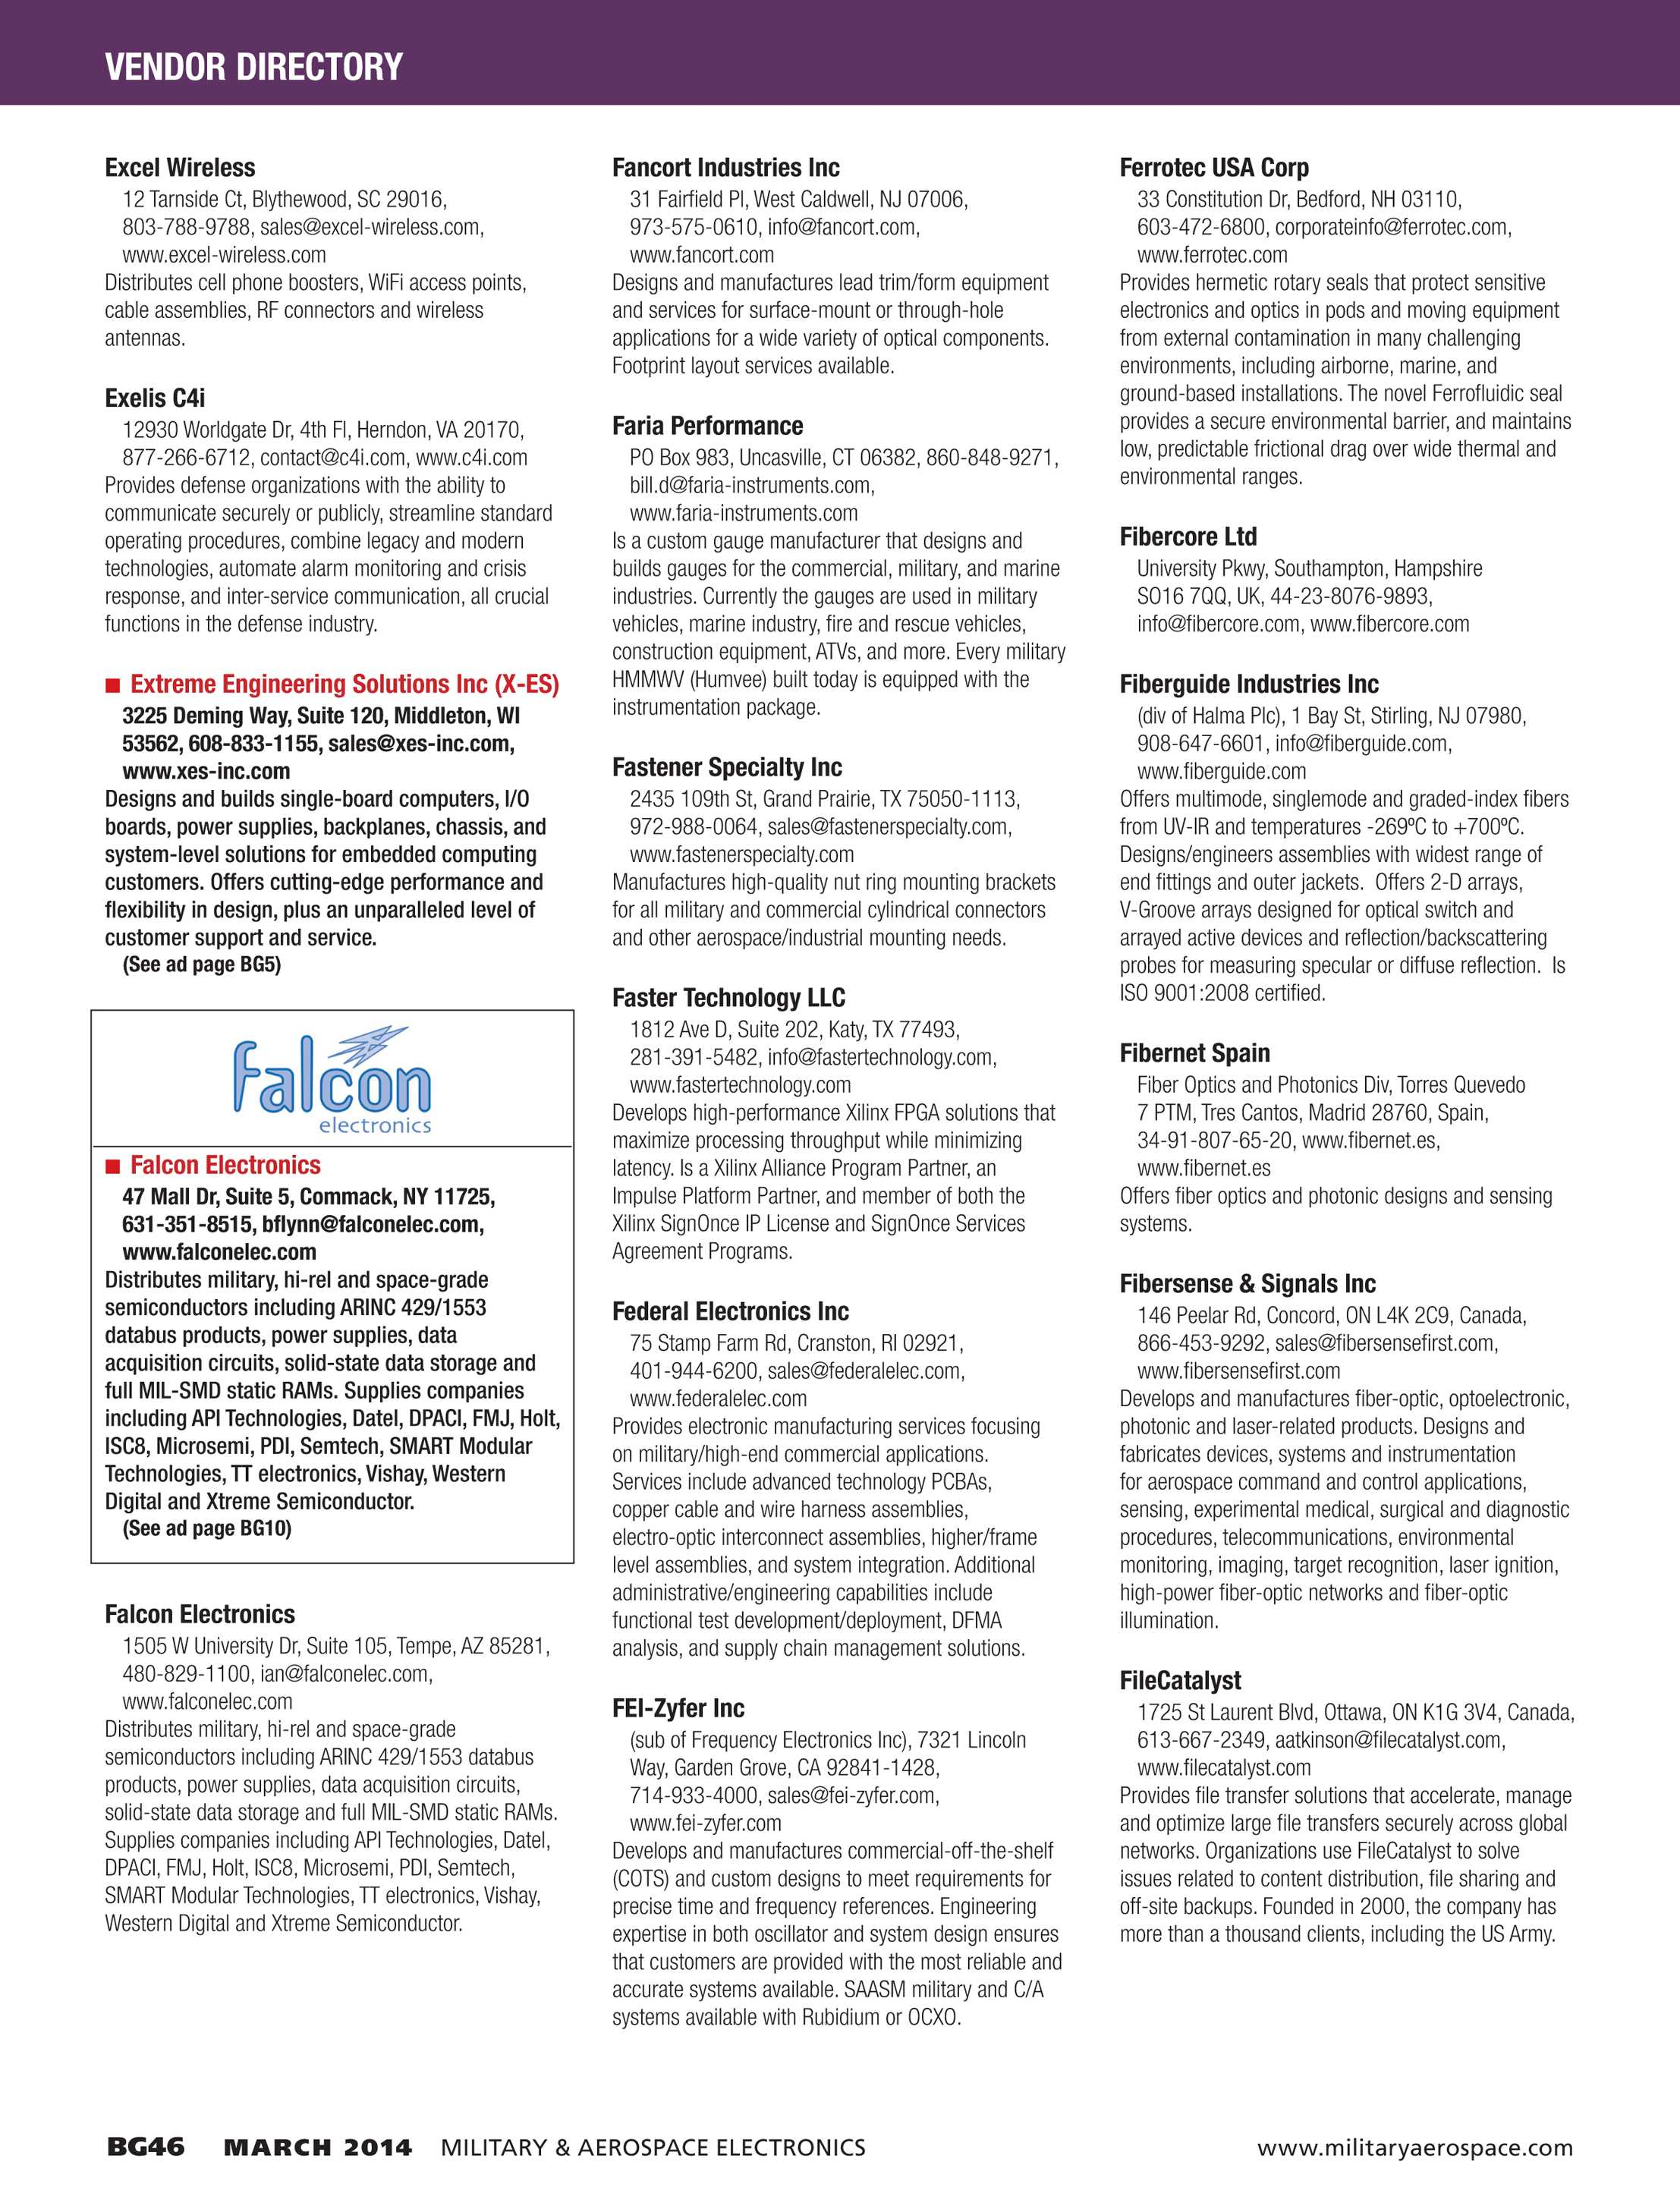 Military & Aerospace Electronics - Buyers Guide 2014 - page BG46